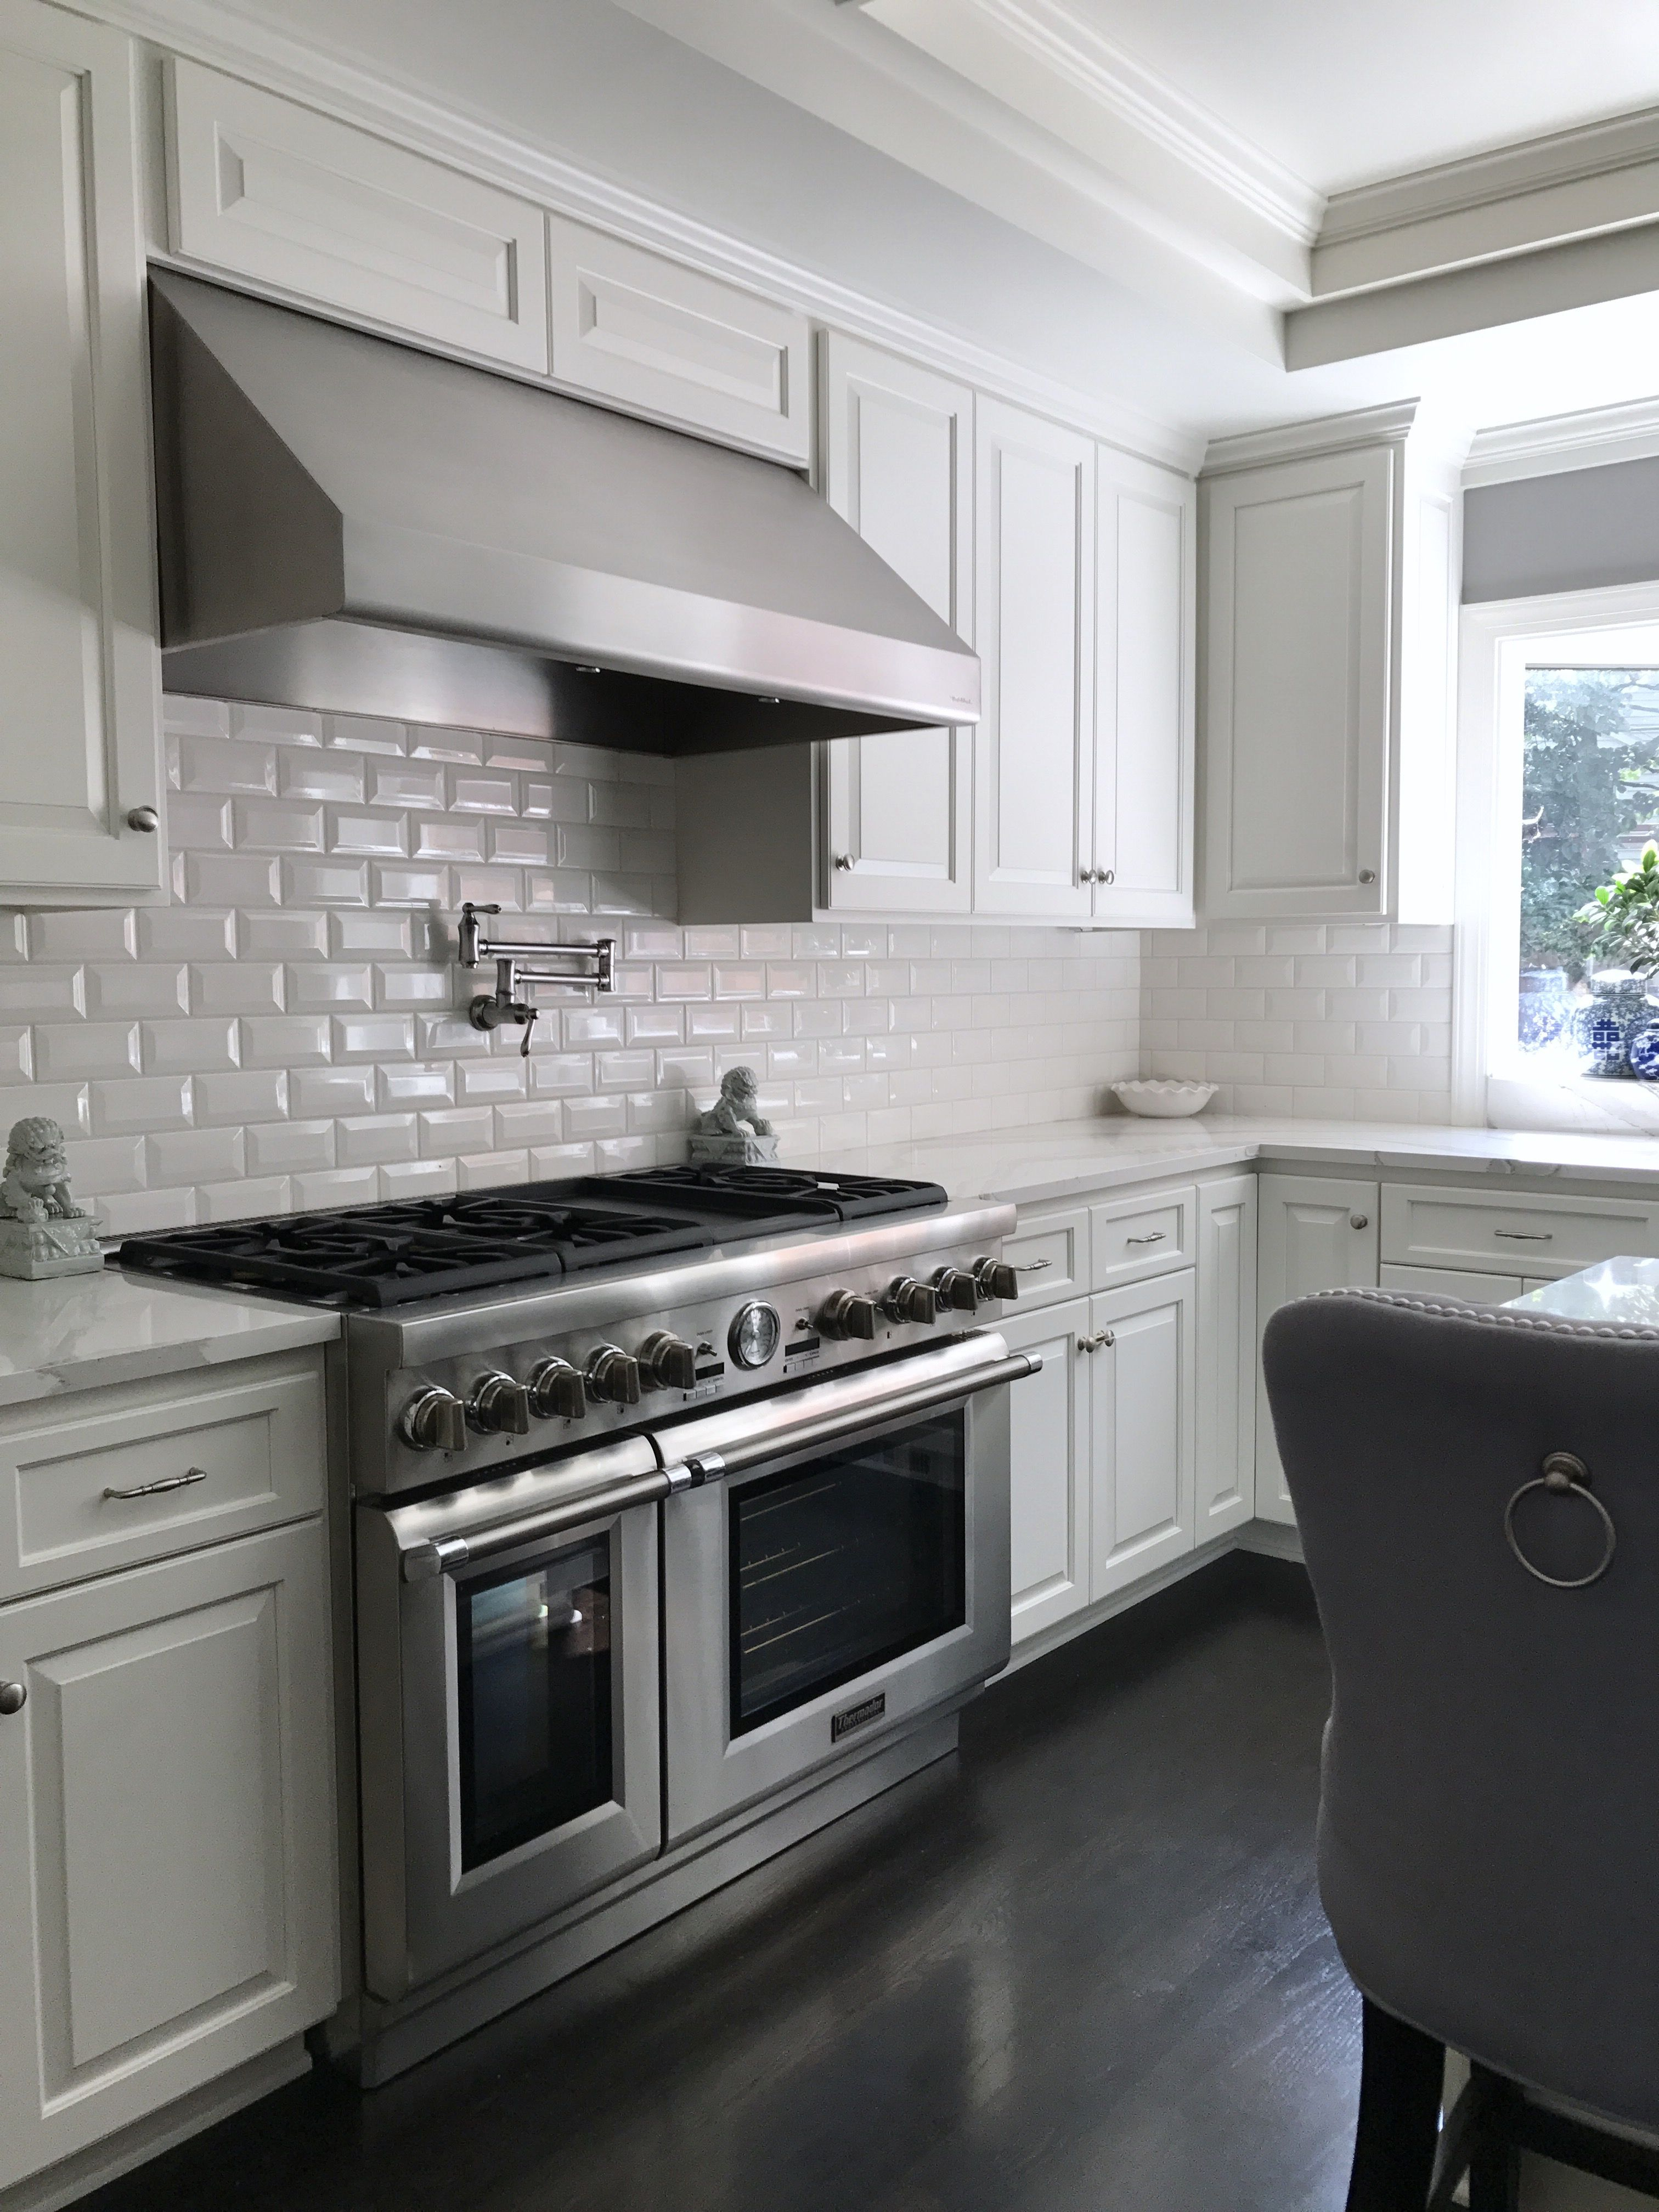 Newly remodeled white kitchen thanks to the dream team of